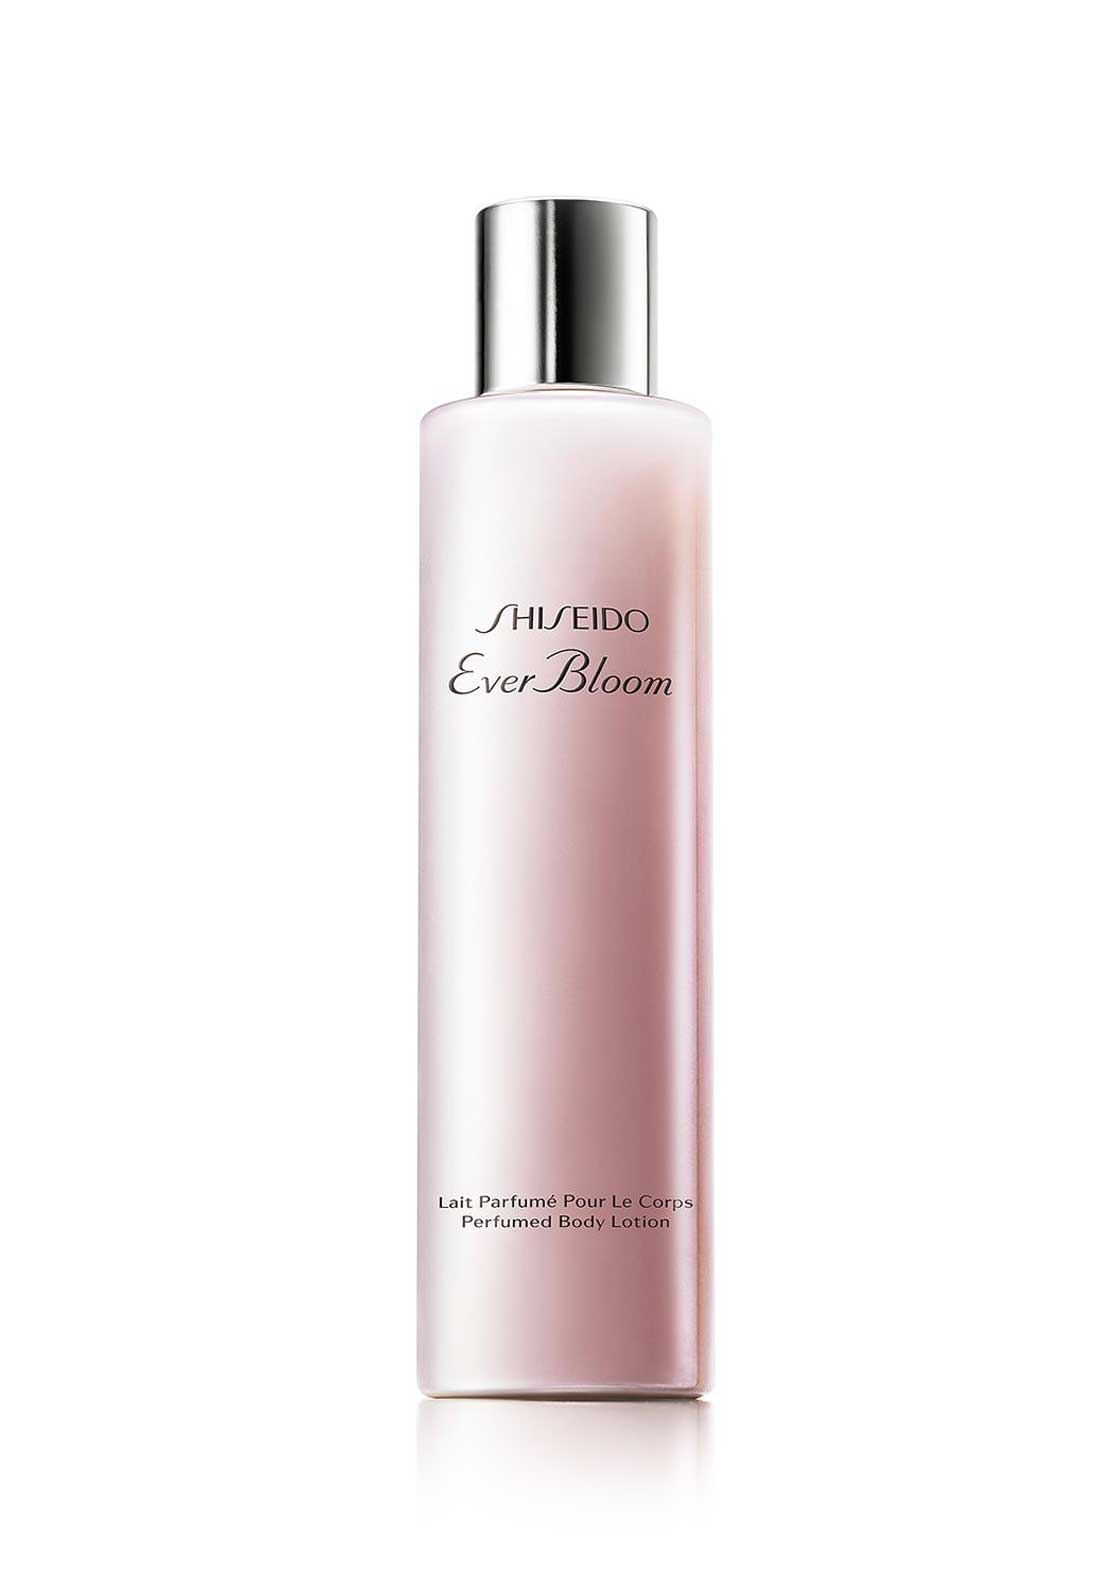 Shiseido Ever Bloom Perfumed Body Lotion, 200ml